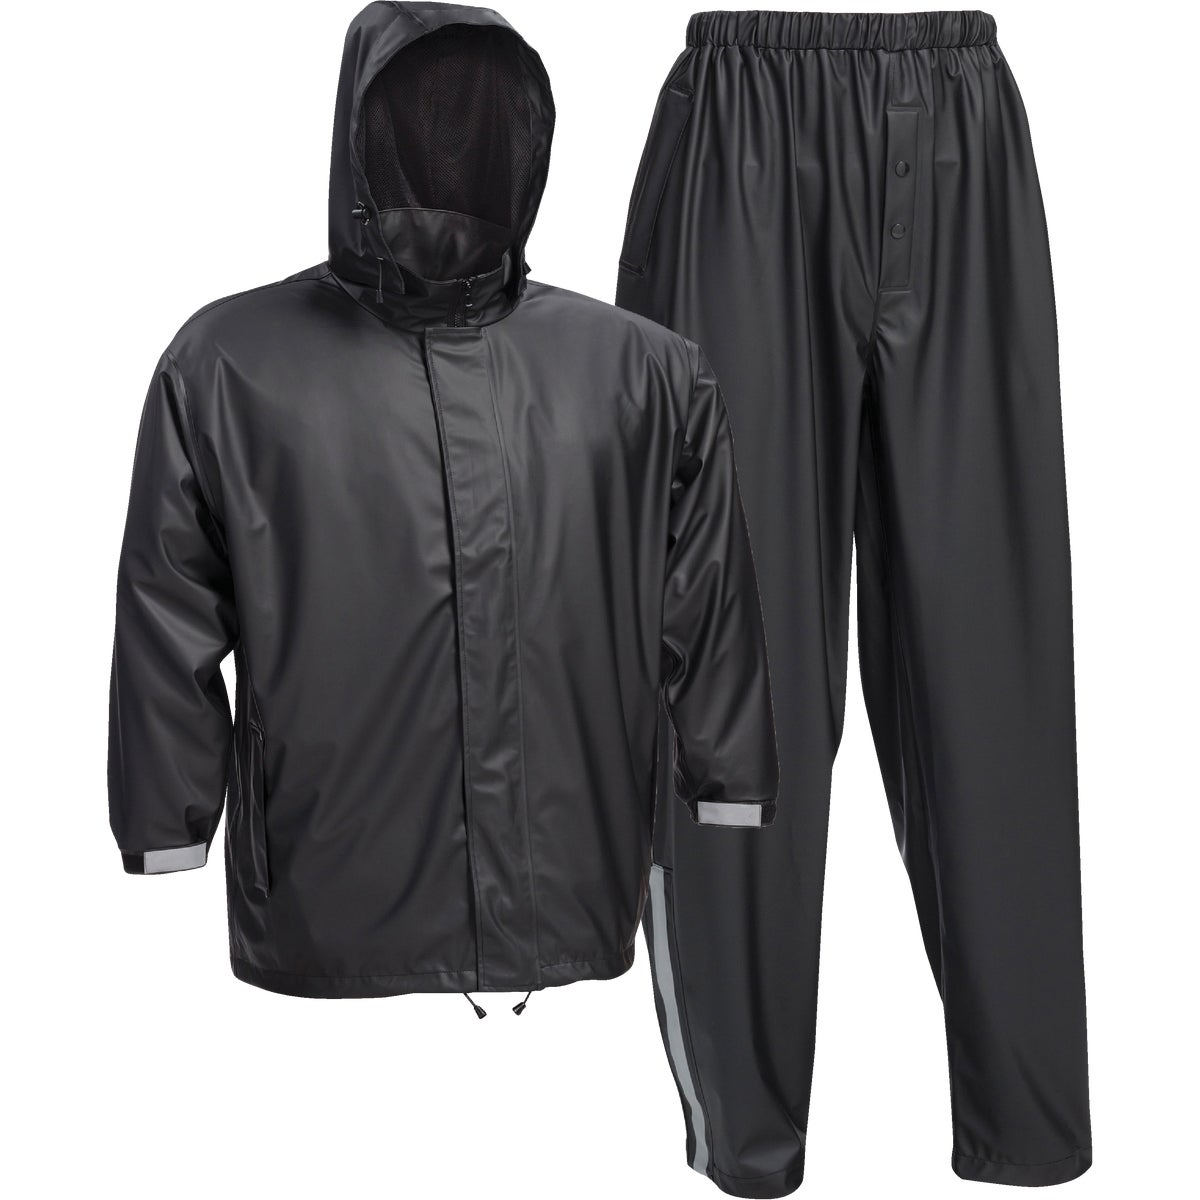 LRG BLK NYLON RAINSUIT - R103L by Custom Leathercraft